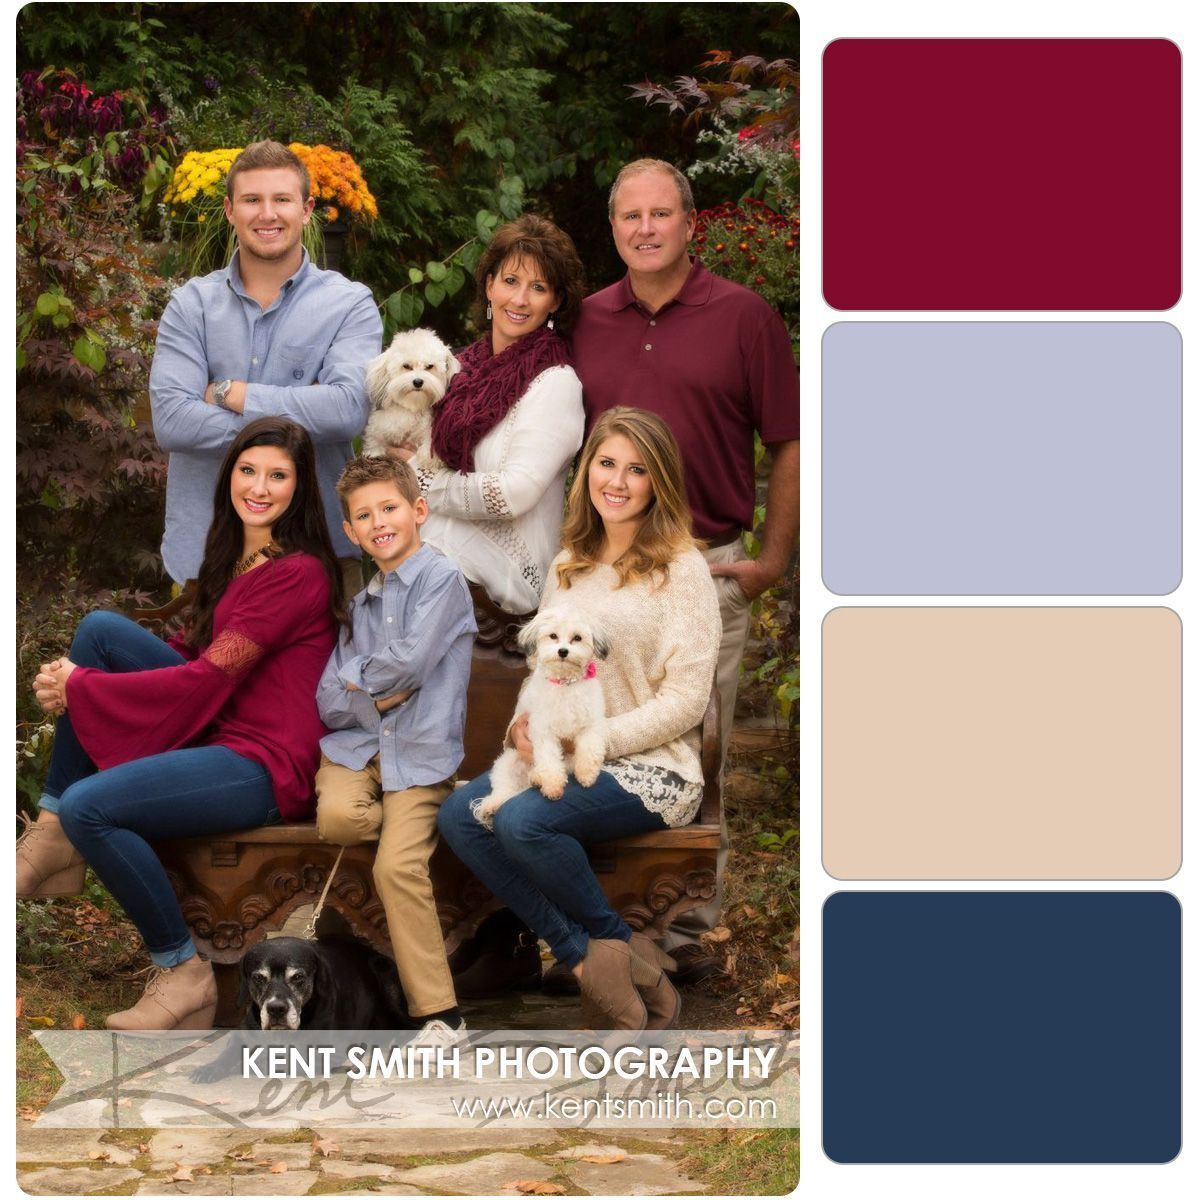 My favorite color combo so far #familyphotooutfits My favorite color combo so far #familyphotooutfits